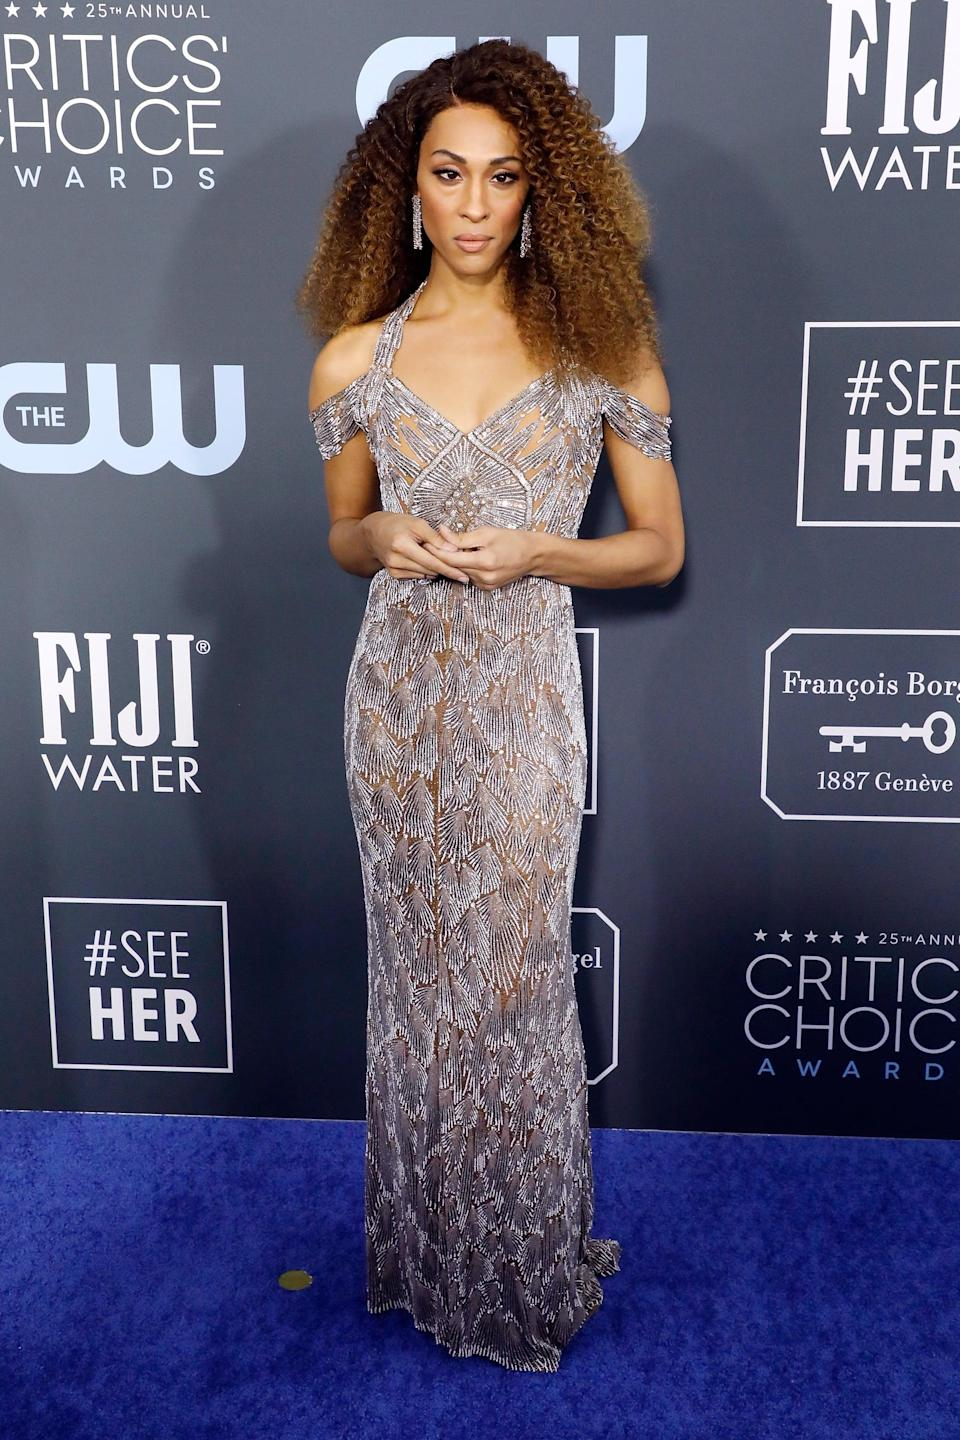 <p>She styled her look with Gismondi 1754 jewels and Giuseppe Zanotti shoes at the 2020 Critics' Choice Awards in Santa Monica, CA.</p>